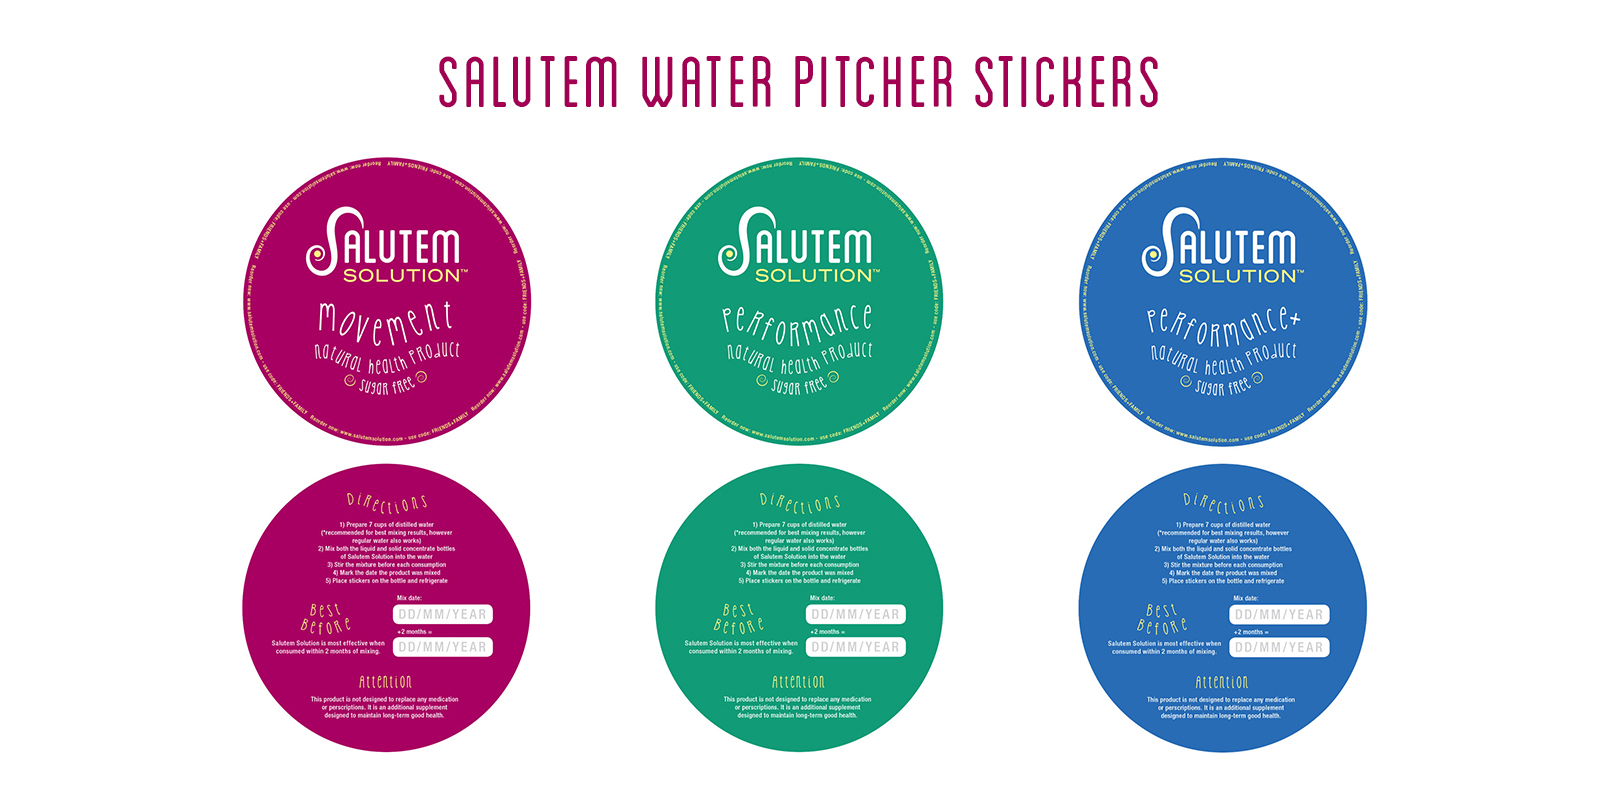 Salutem water pitcher stickers